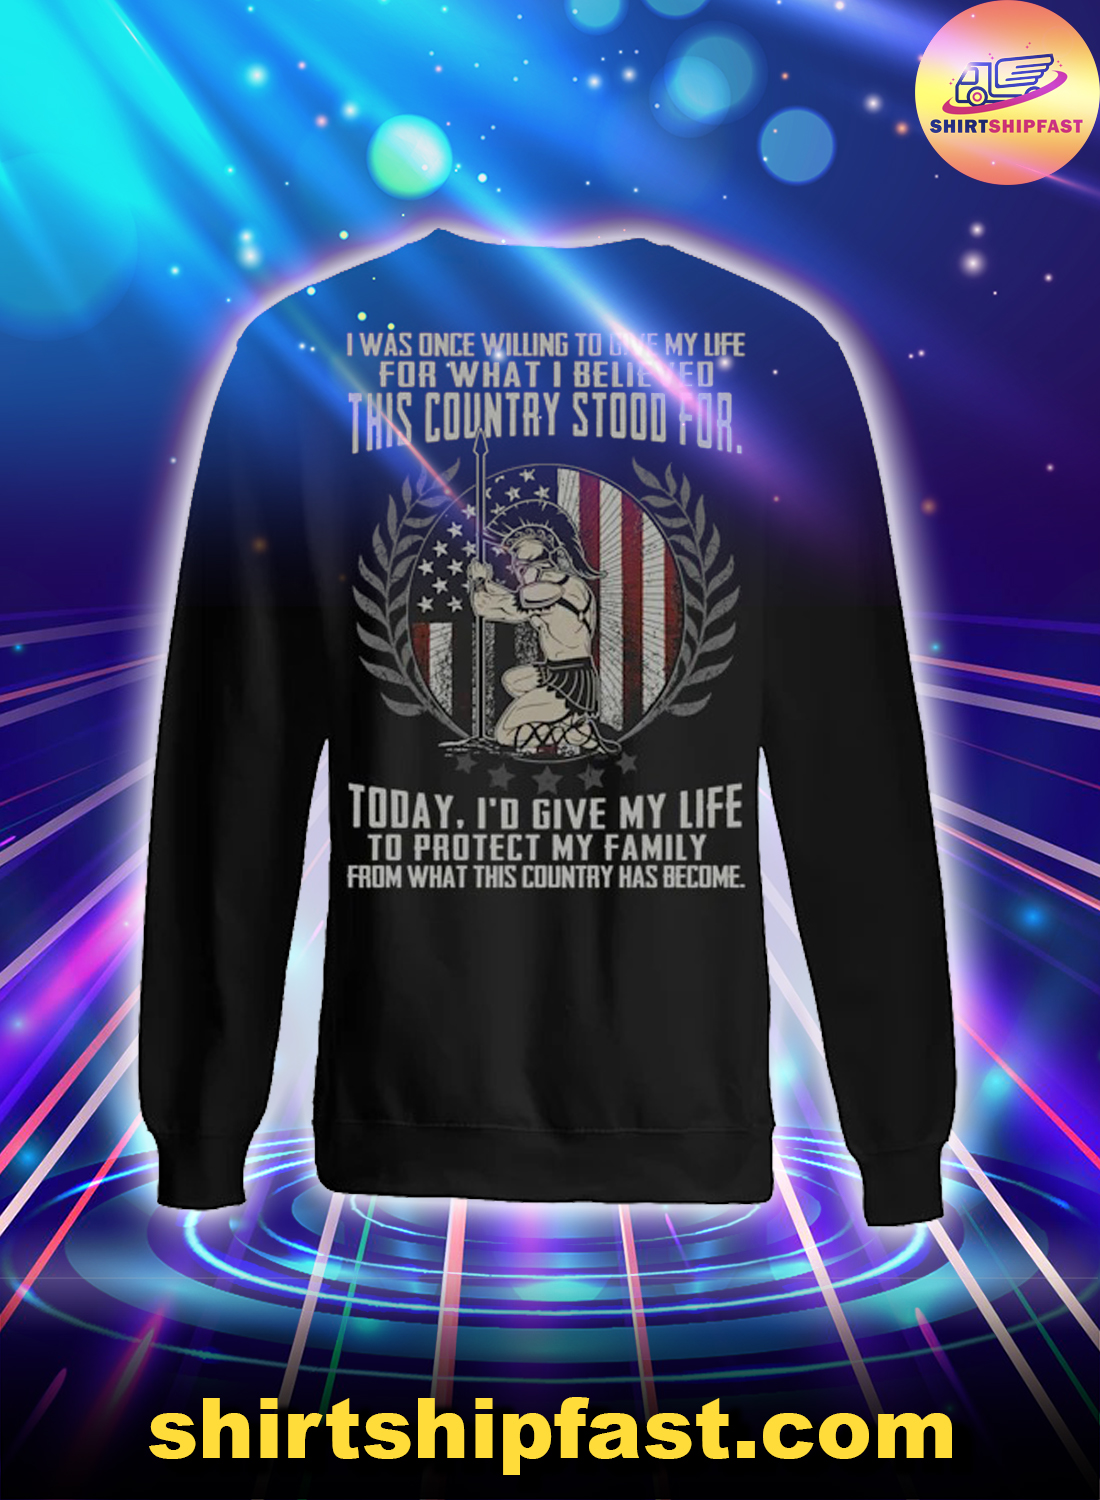 Roman warrior I was one willing to give my life for what I believed this country stood for sweatshirt